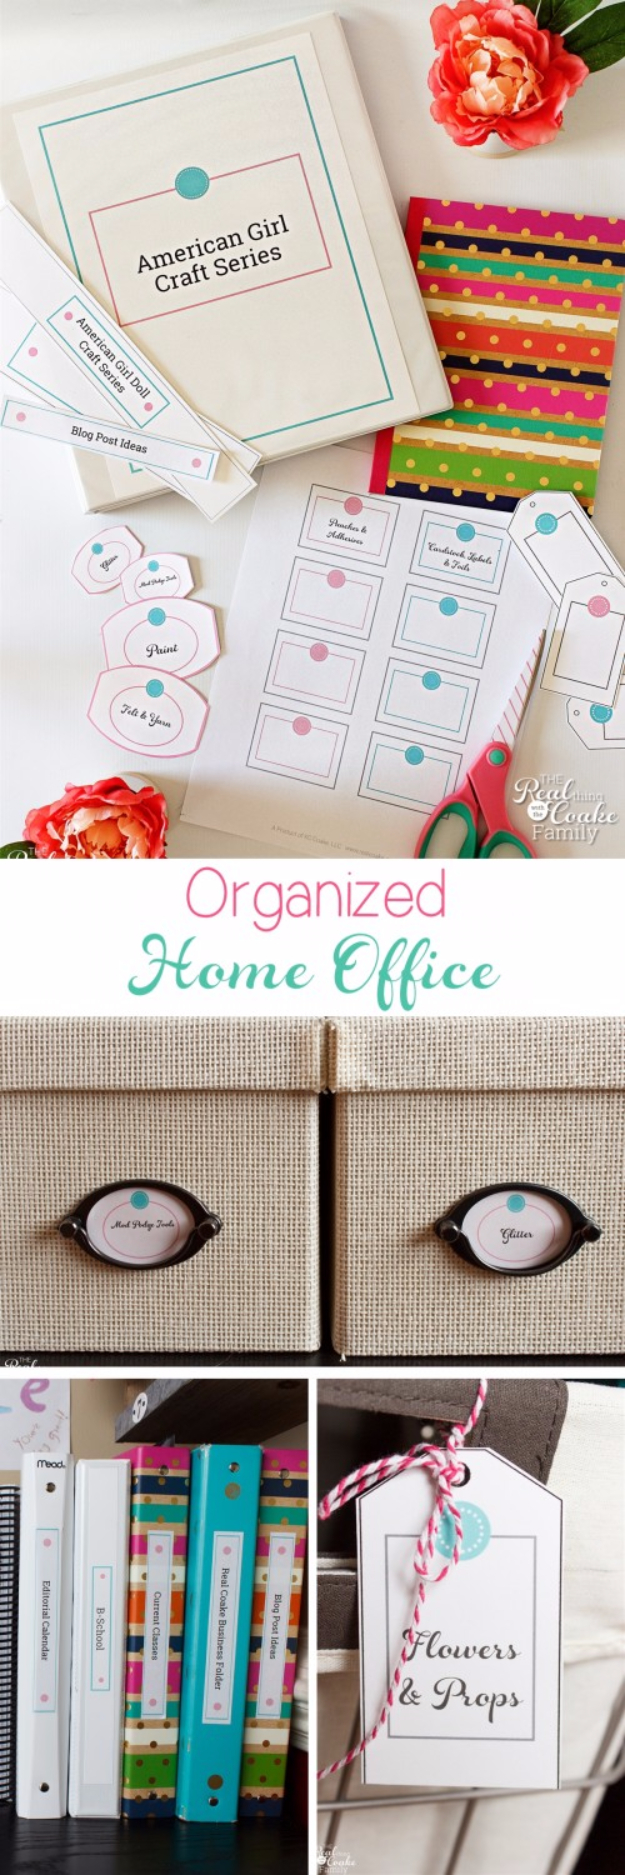 Best Organizing Ideas for the New Year - Organized Home Office - Resolutions for Getting Organized - DIY Organizing Projects for Home, Bedroom, Closet, Bath and Kitchen - Easy Ways to Organize Shoes, Clutter, Desk and Closets - DIY Projects and Crafts for Women and Men